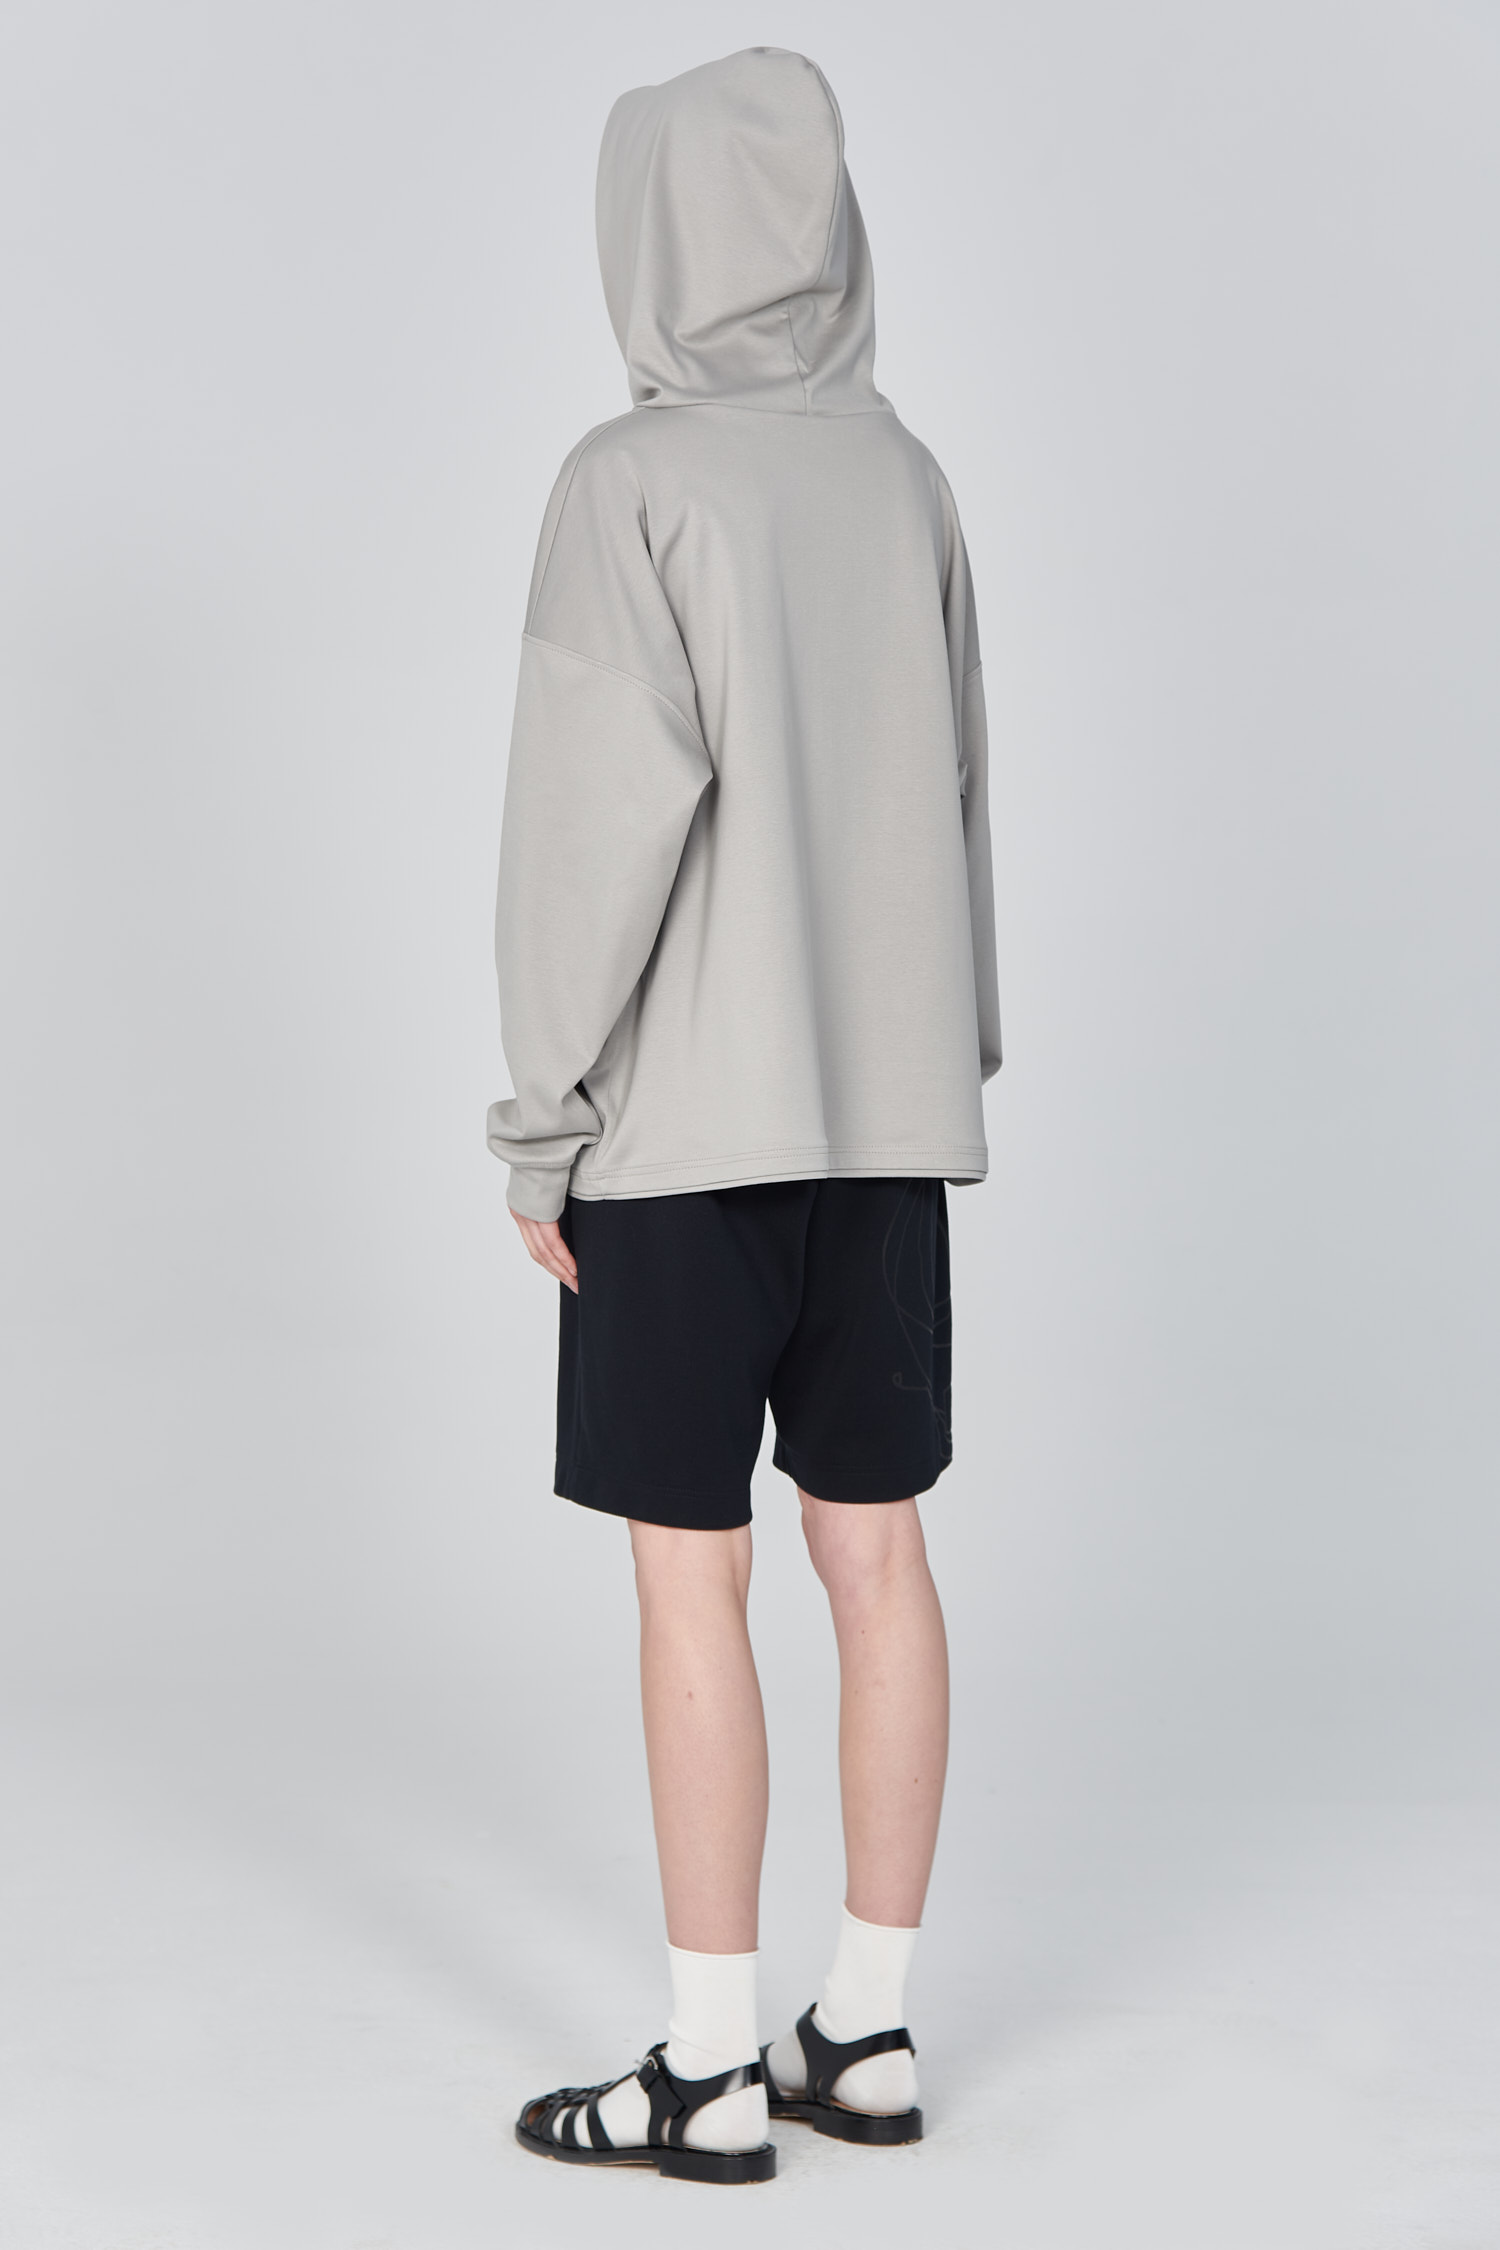 Acephala Ss21 Unisex Grey Hoodie With Graphic Print Back